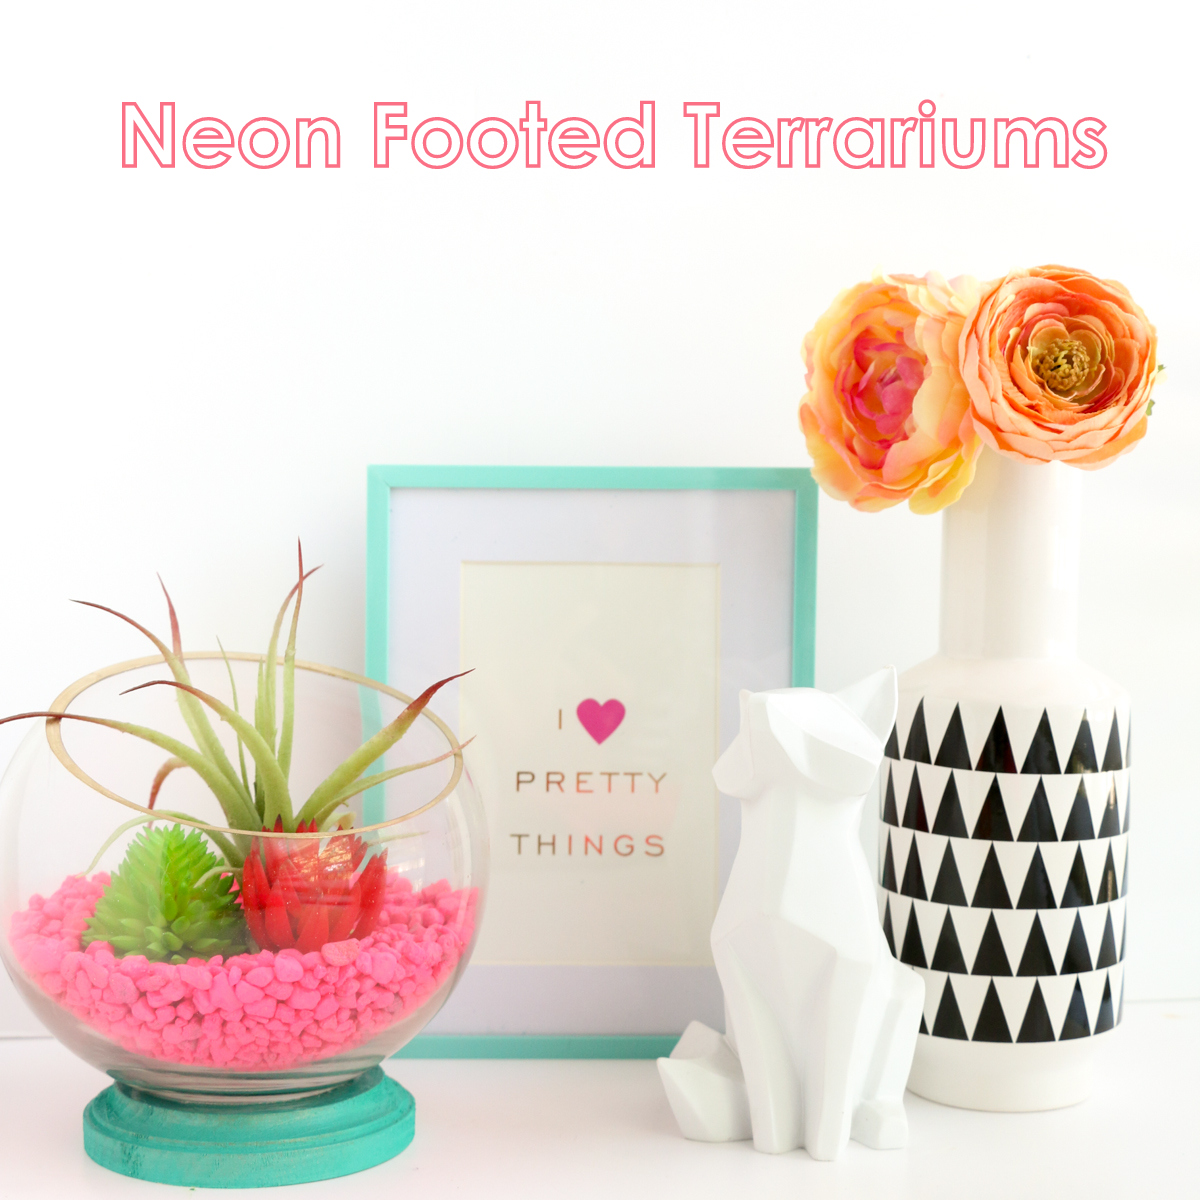 http://www.akailochiclife.com/2016/05/diy-it-neon-footed-terrariums.html